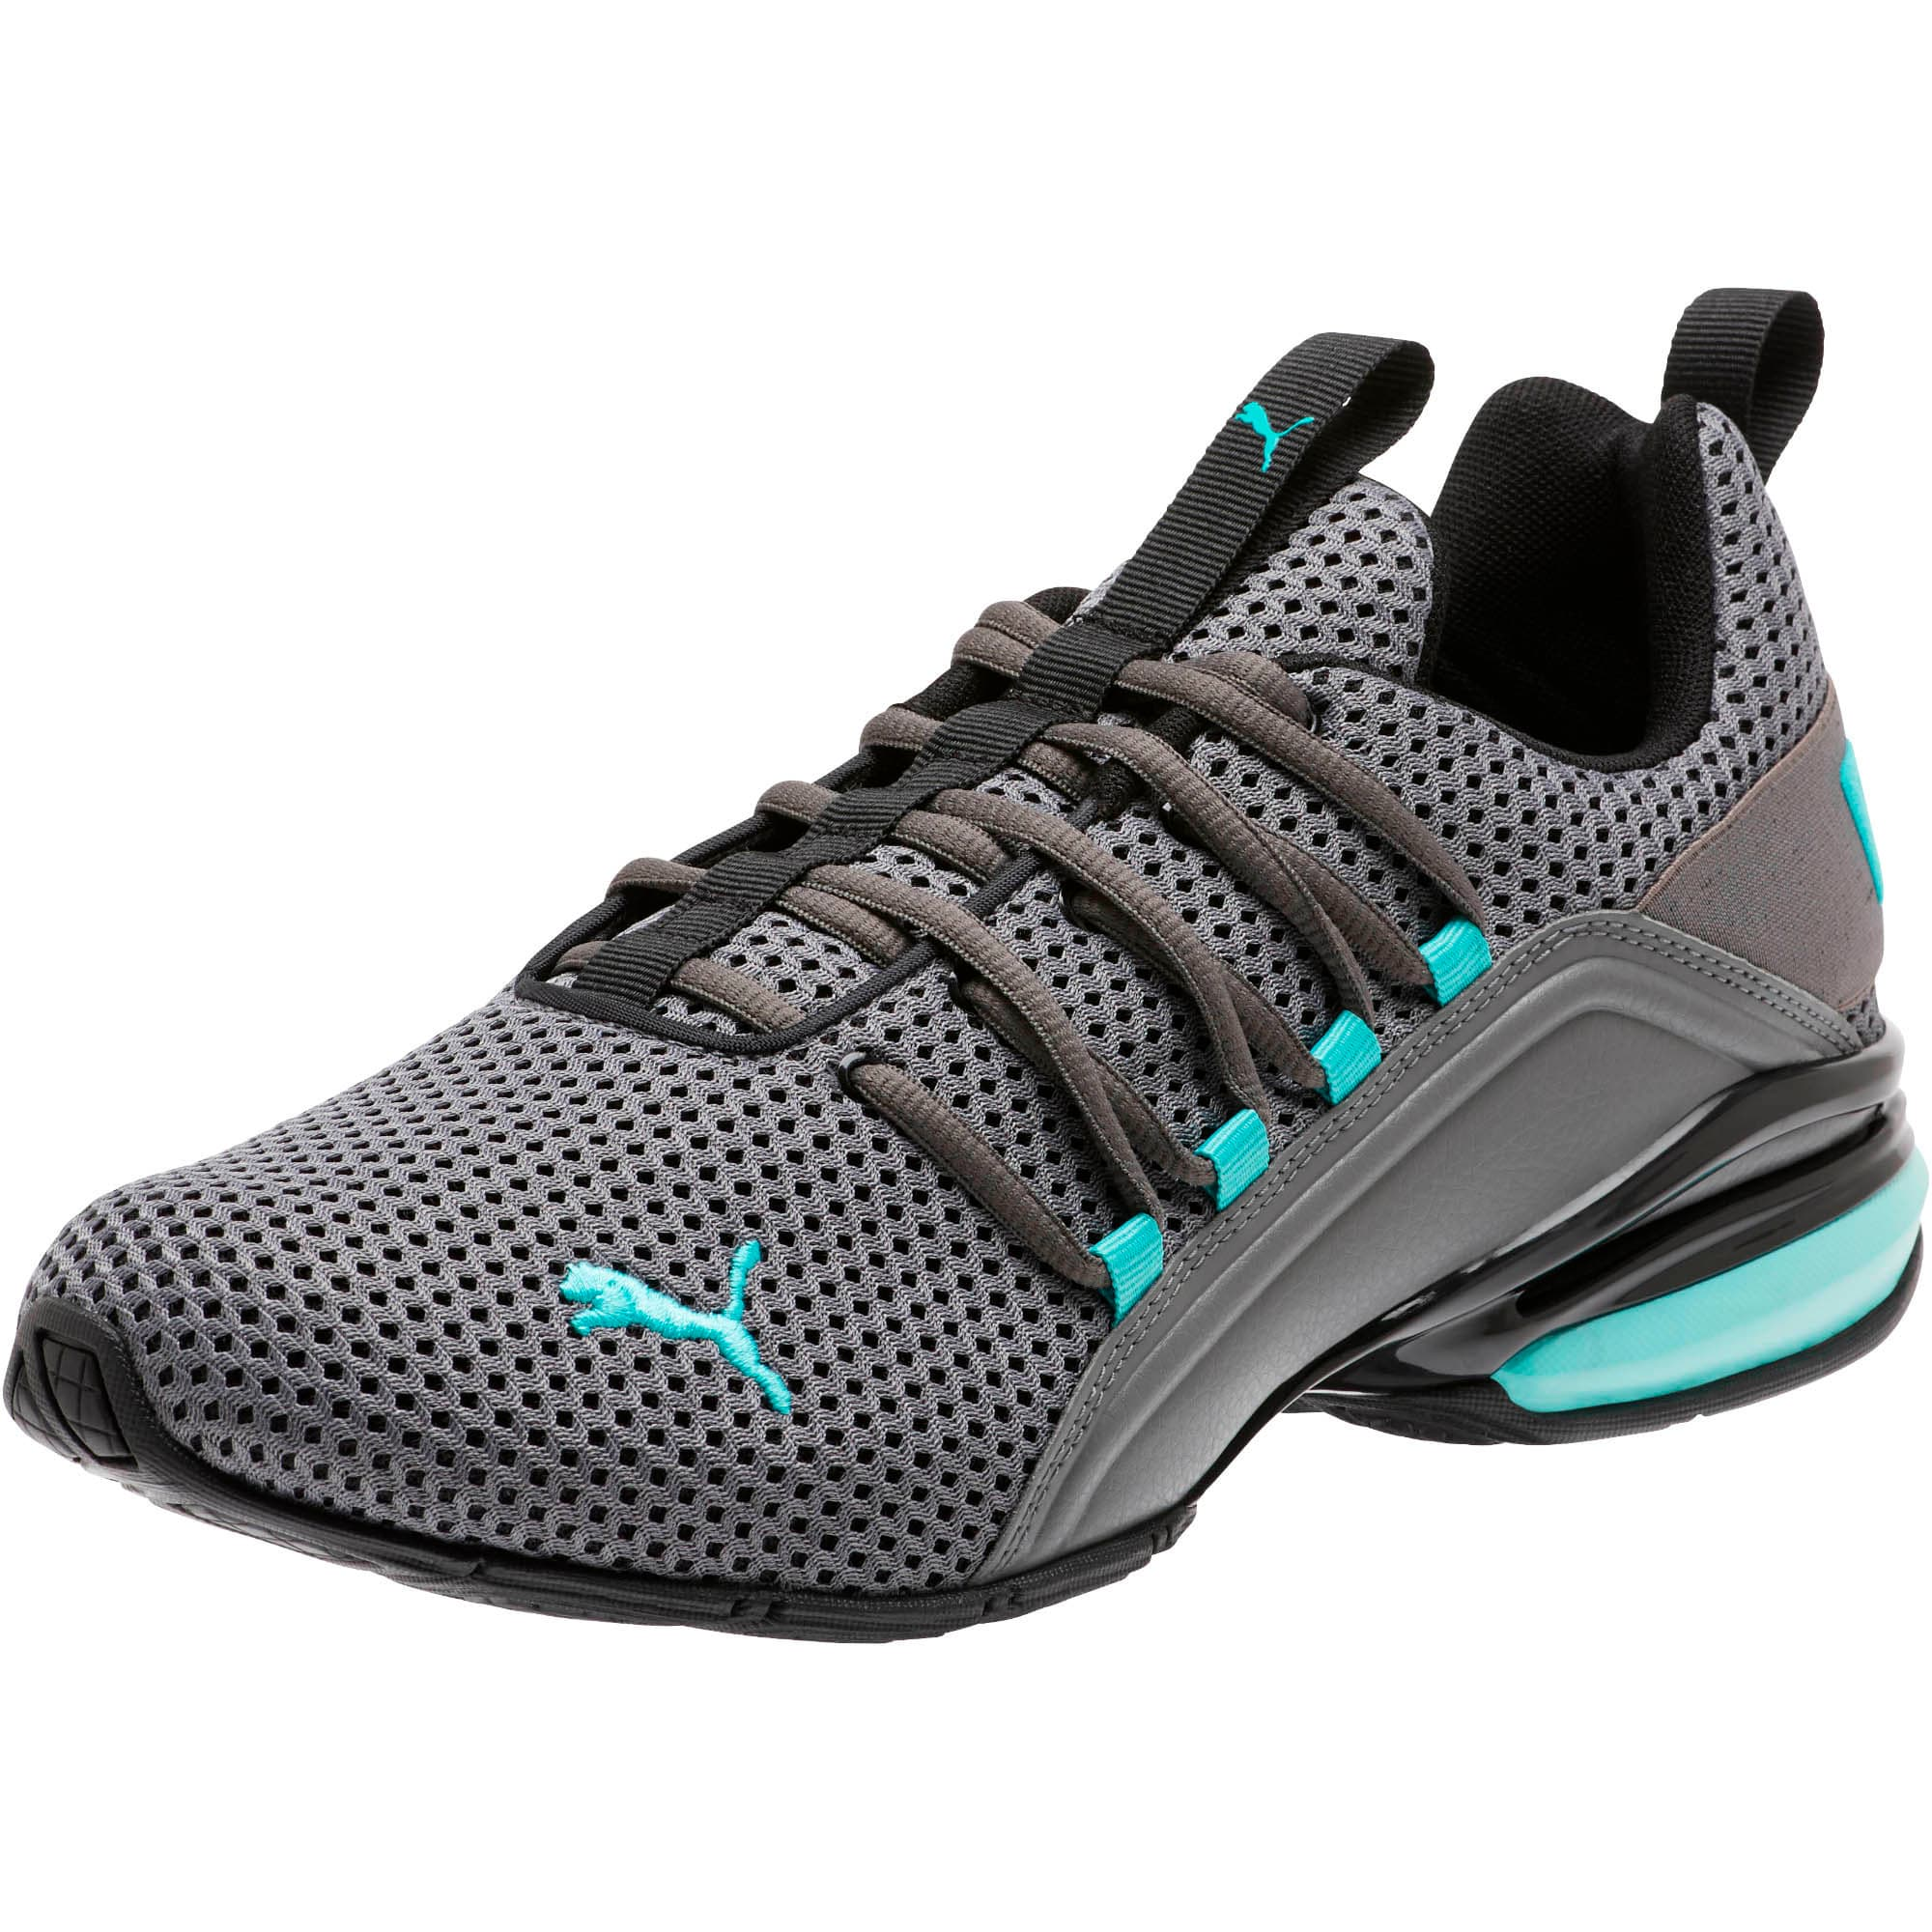 Thumbnail 1 of Axelion Breathe Men's Training Shoes, P Black-CASTLEROCK-Blue Turq, medium